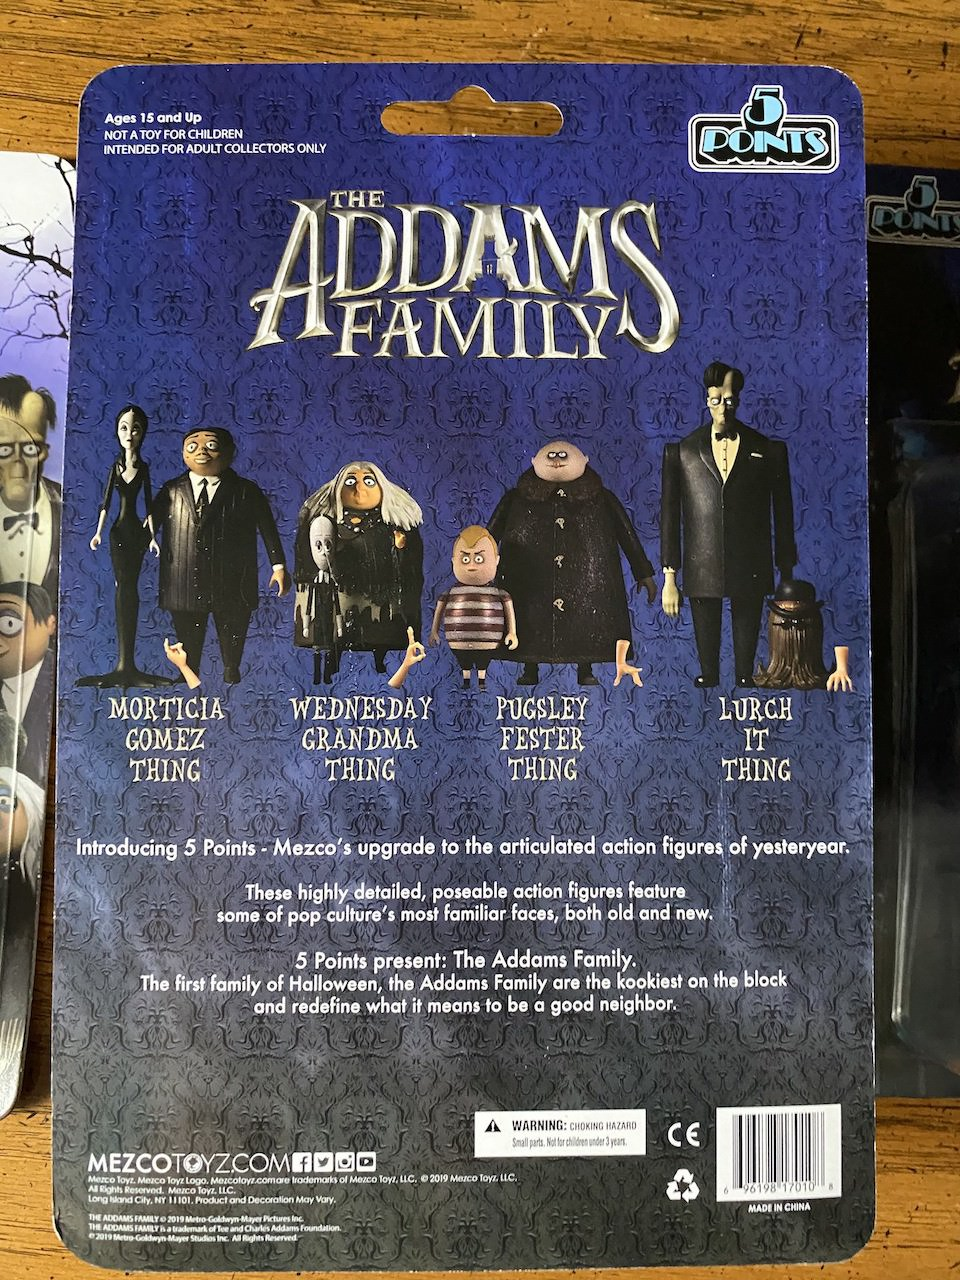 Mezco Toyz 5 Points The Addams Family: The Complete Set review